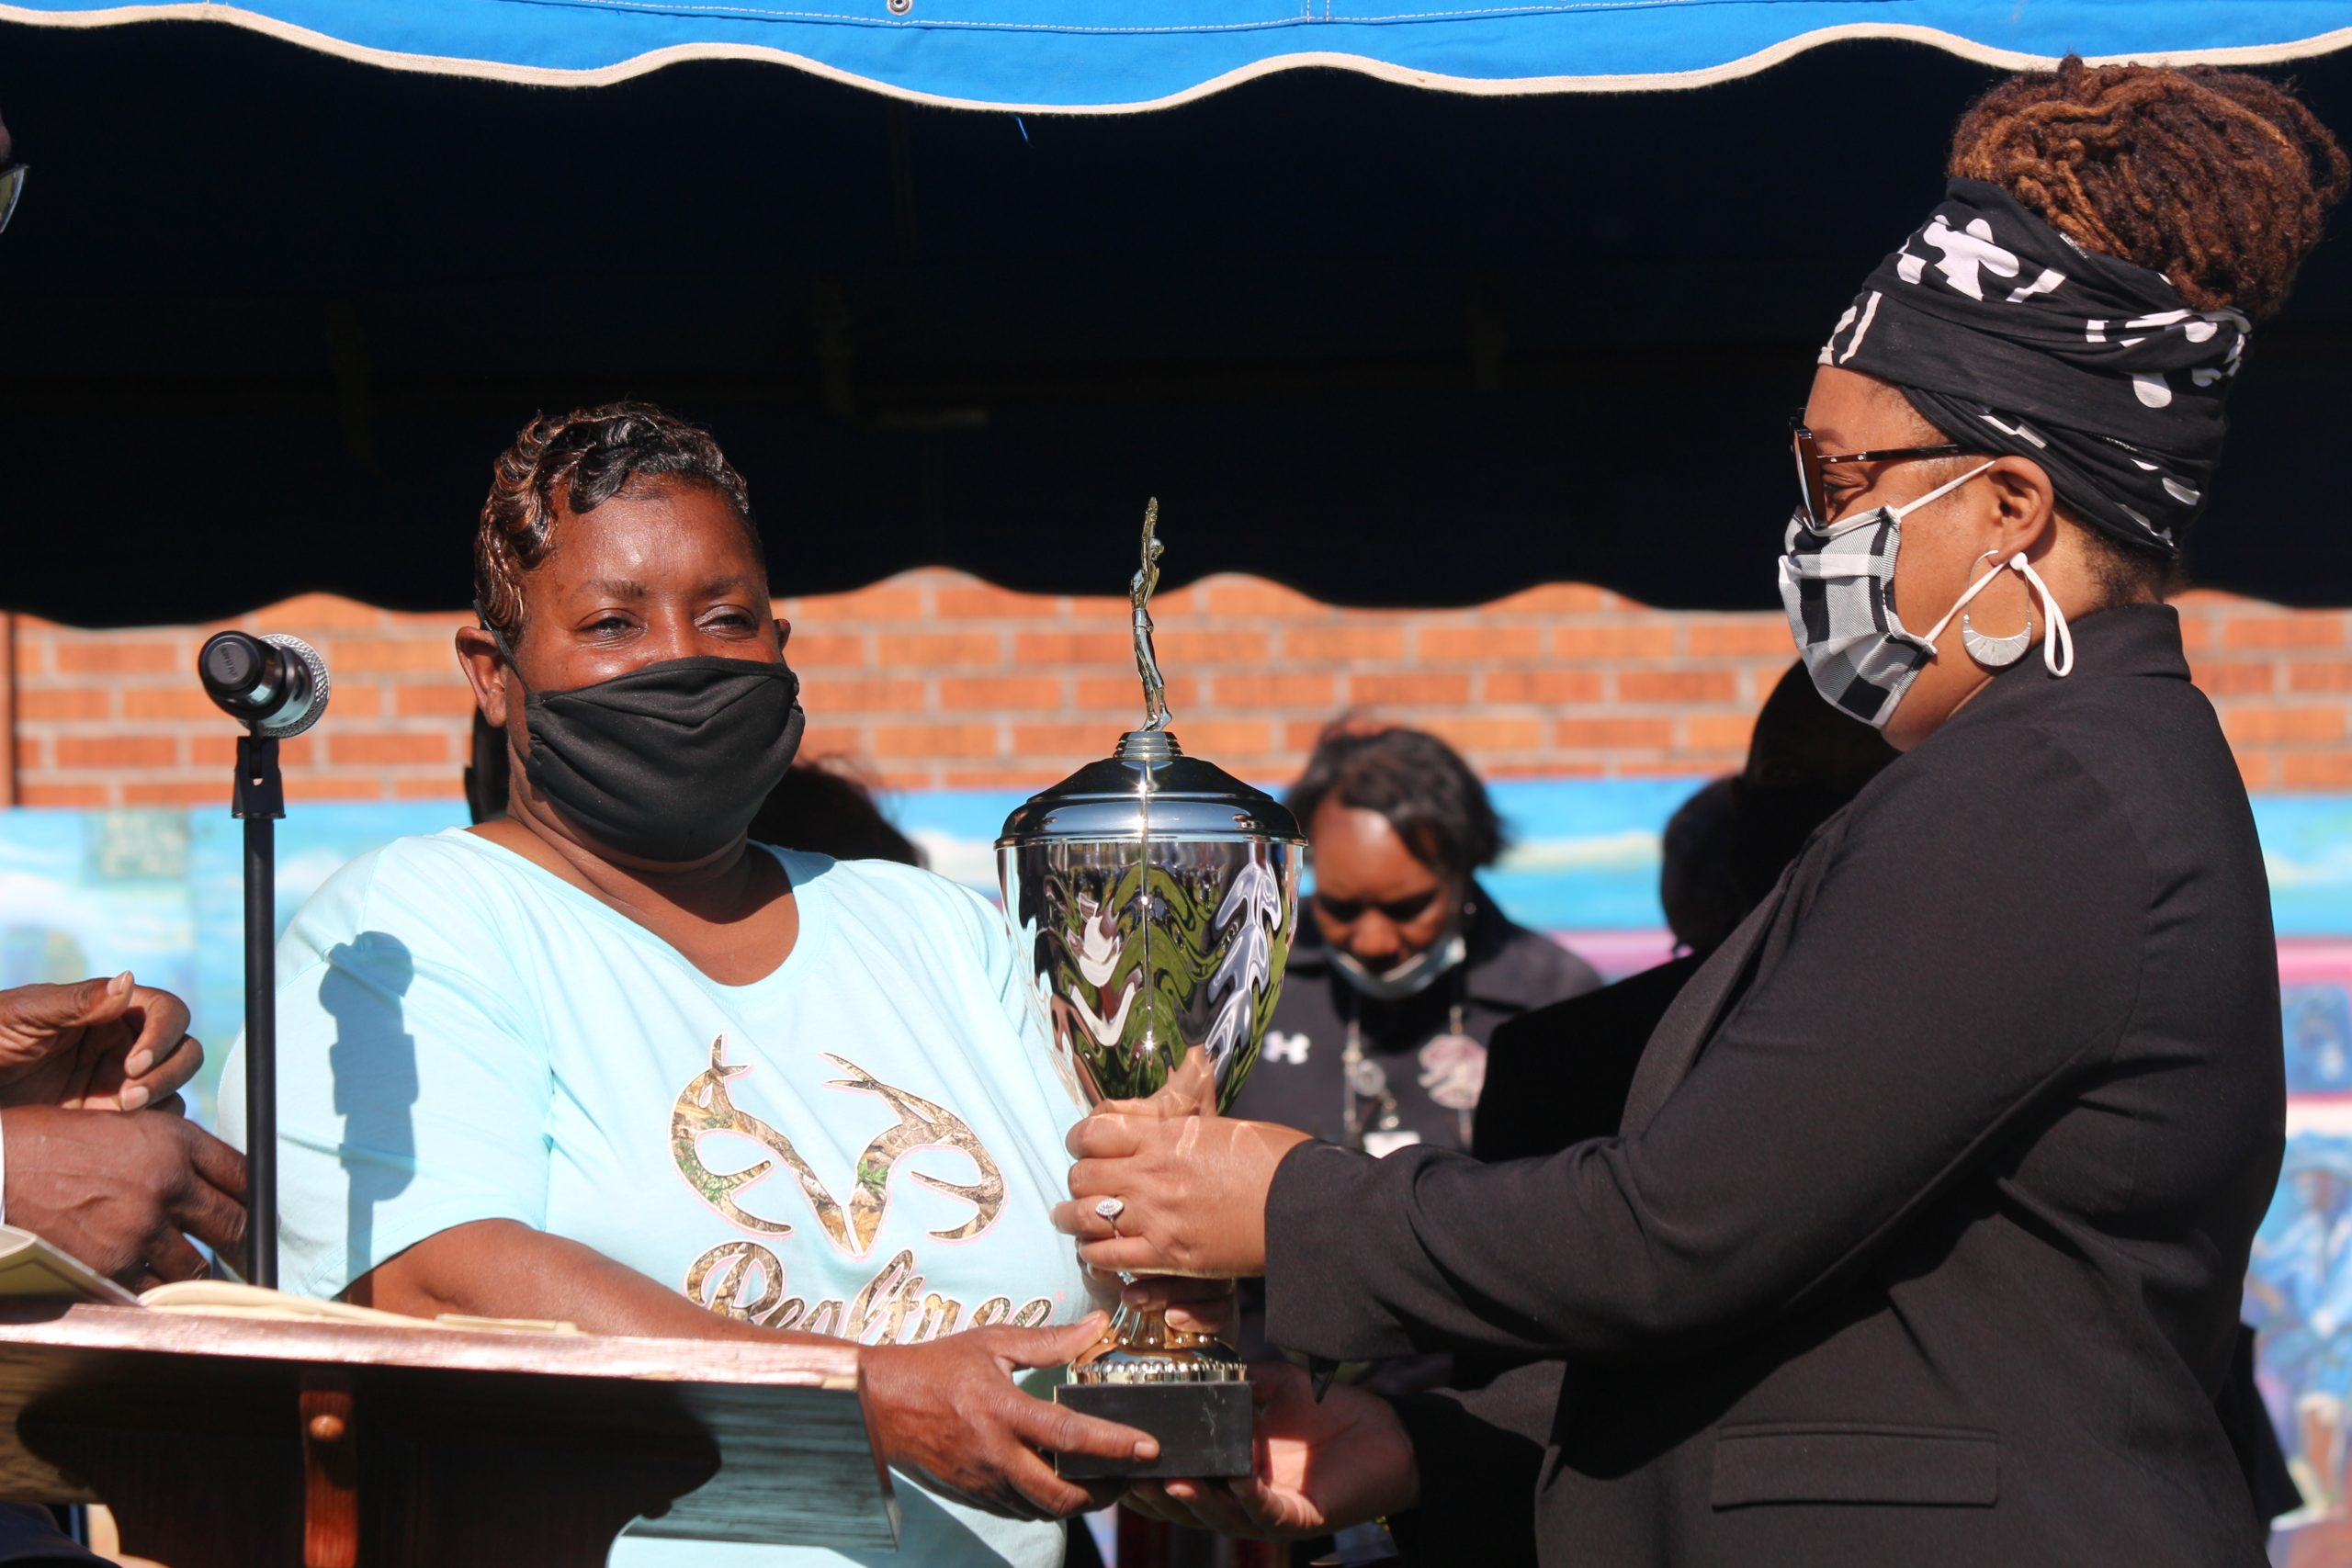 TWo women with trophy